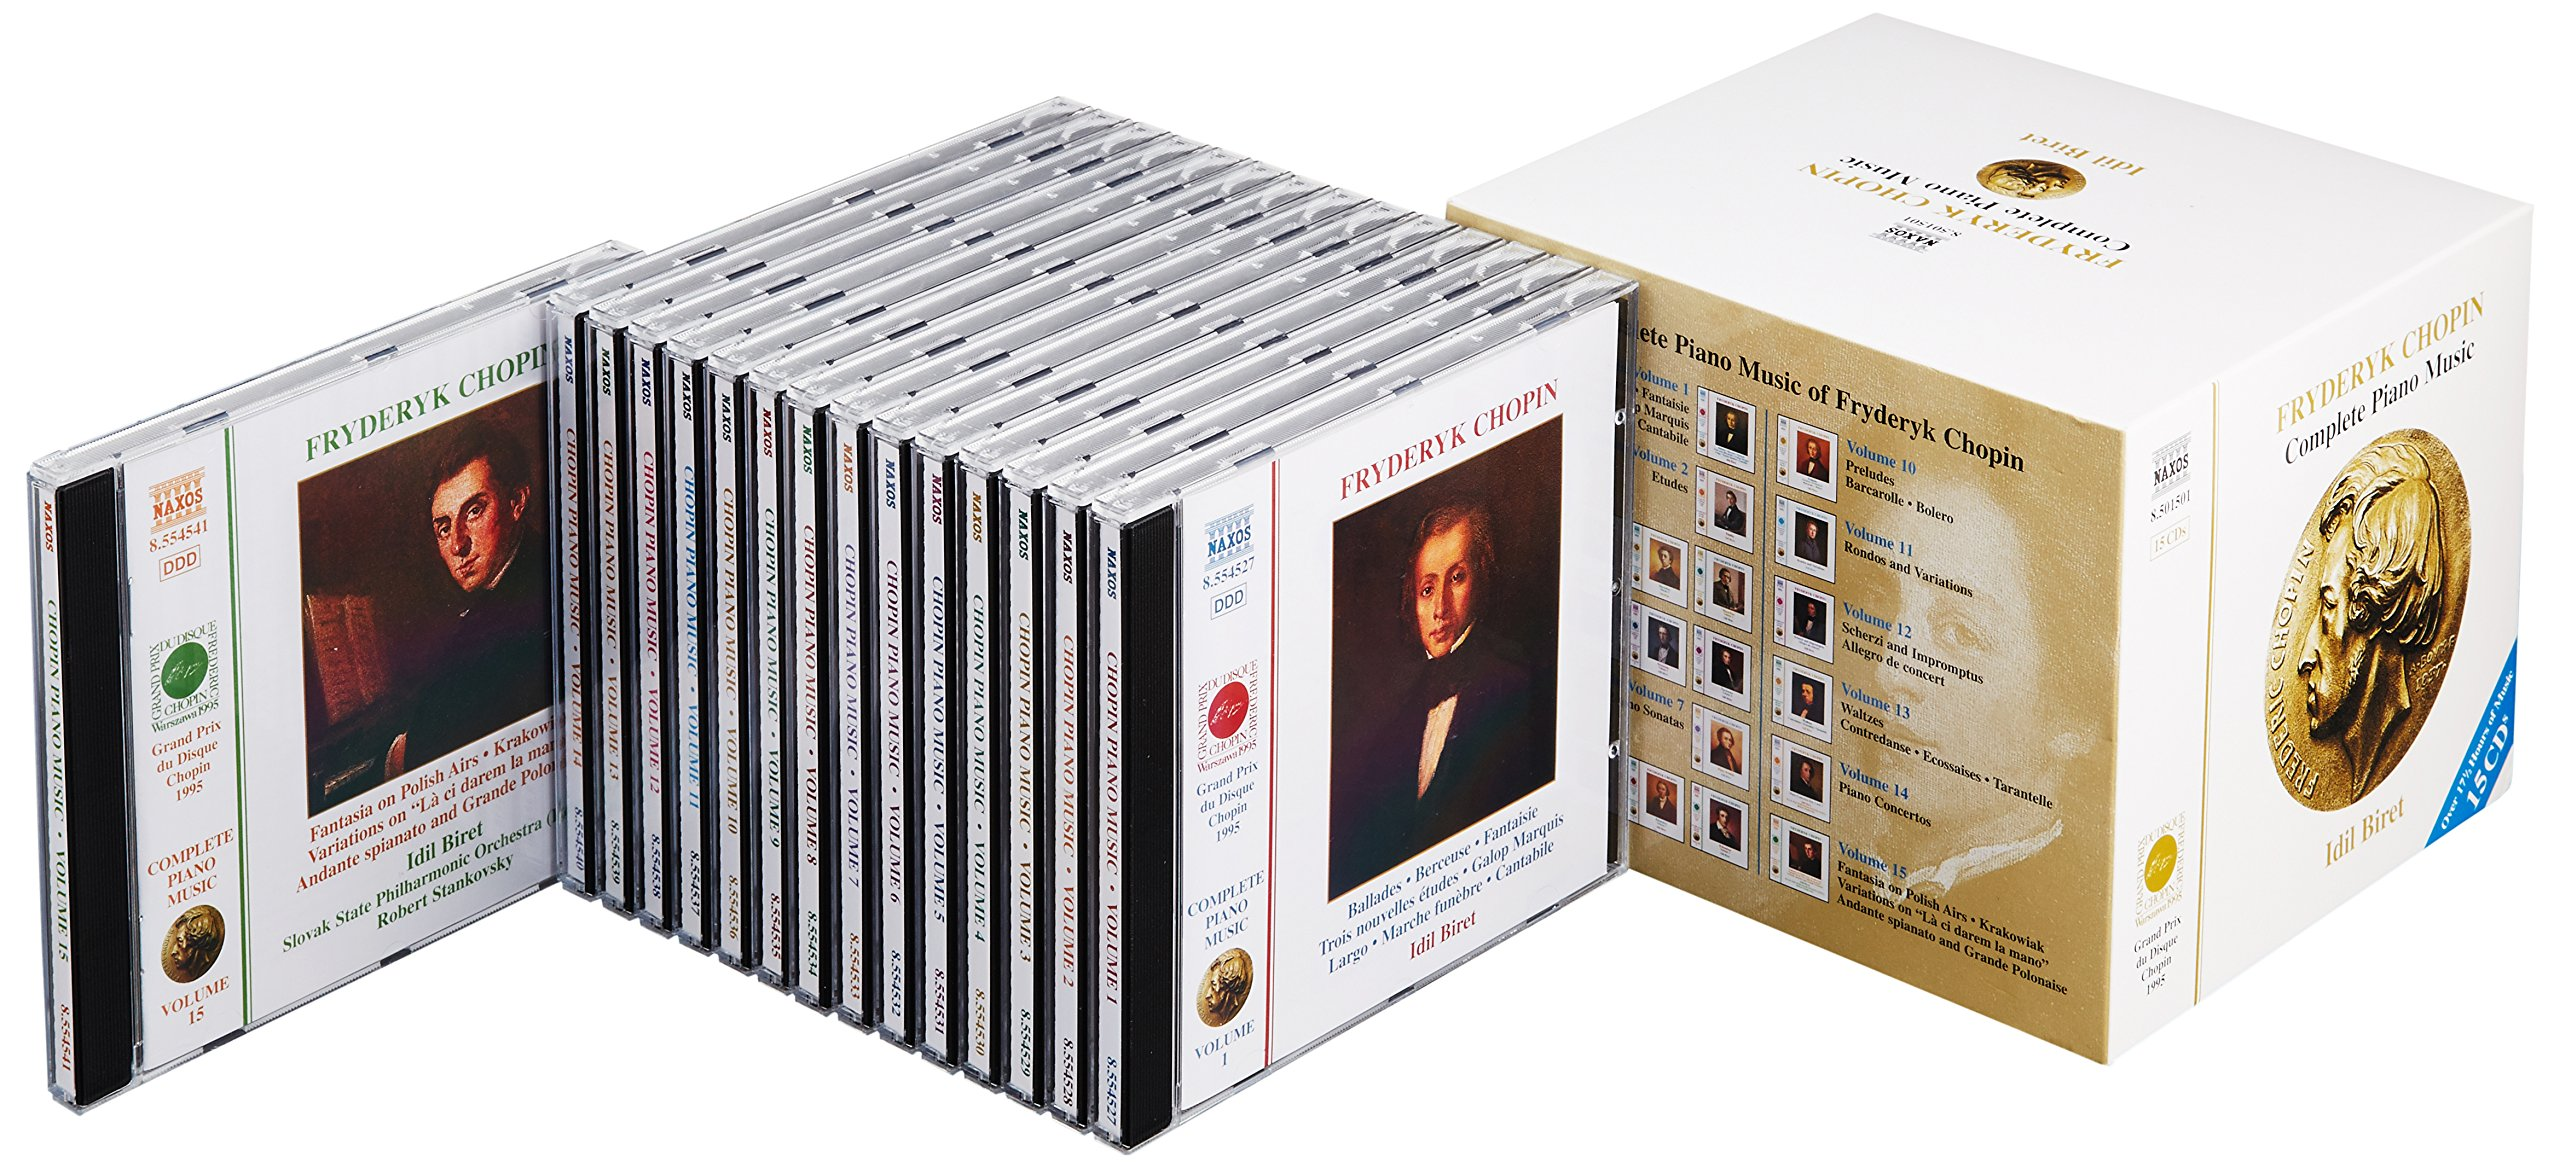 Chopin: Complete Piano Music by Naxos Box Sets